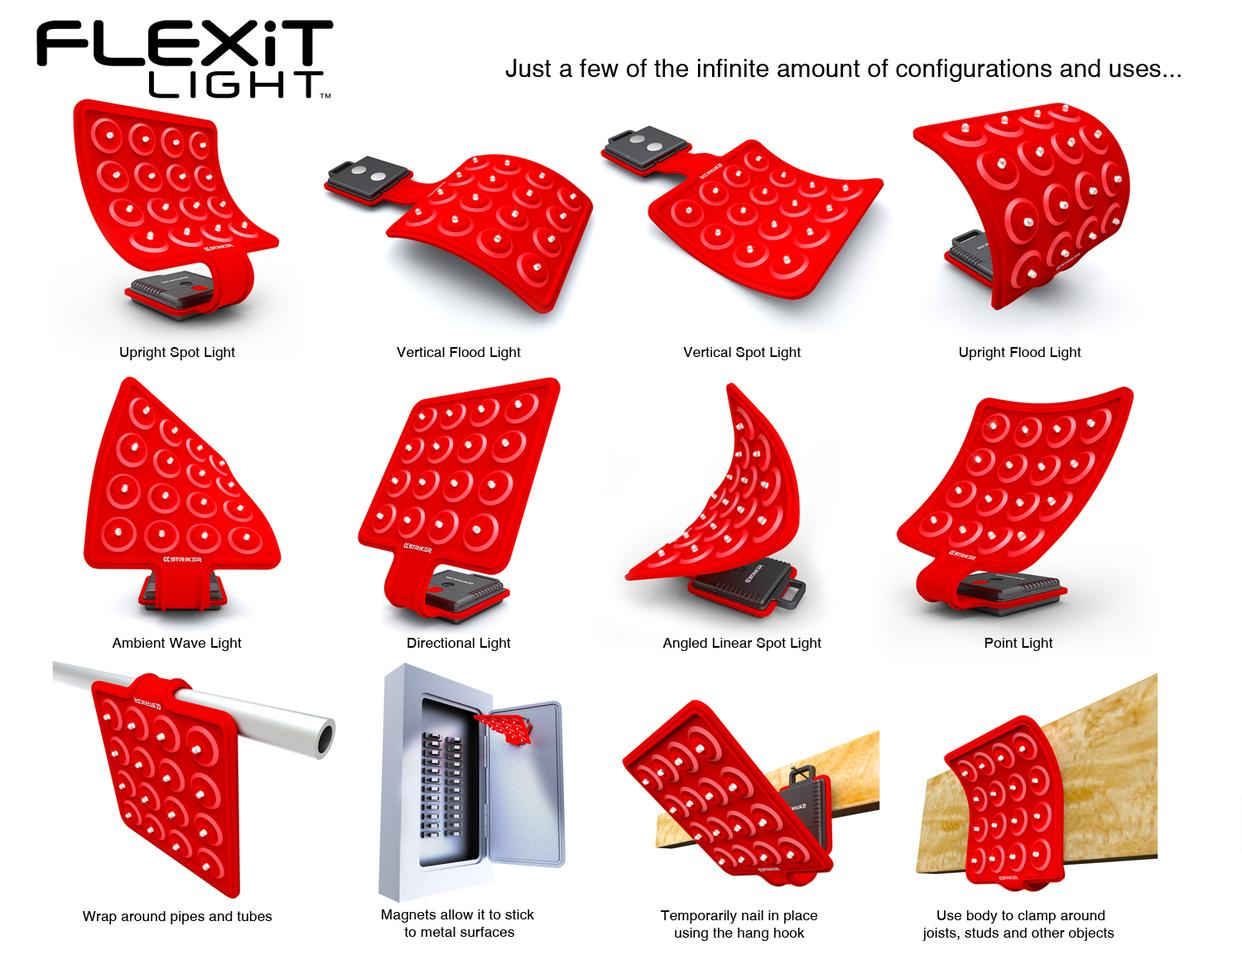 The FLEXiT Light incorporates a bendable, hang-able and magnetically-attachable array of 16 LED bulbs